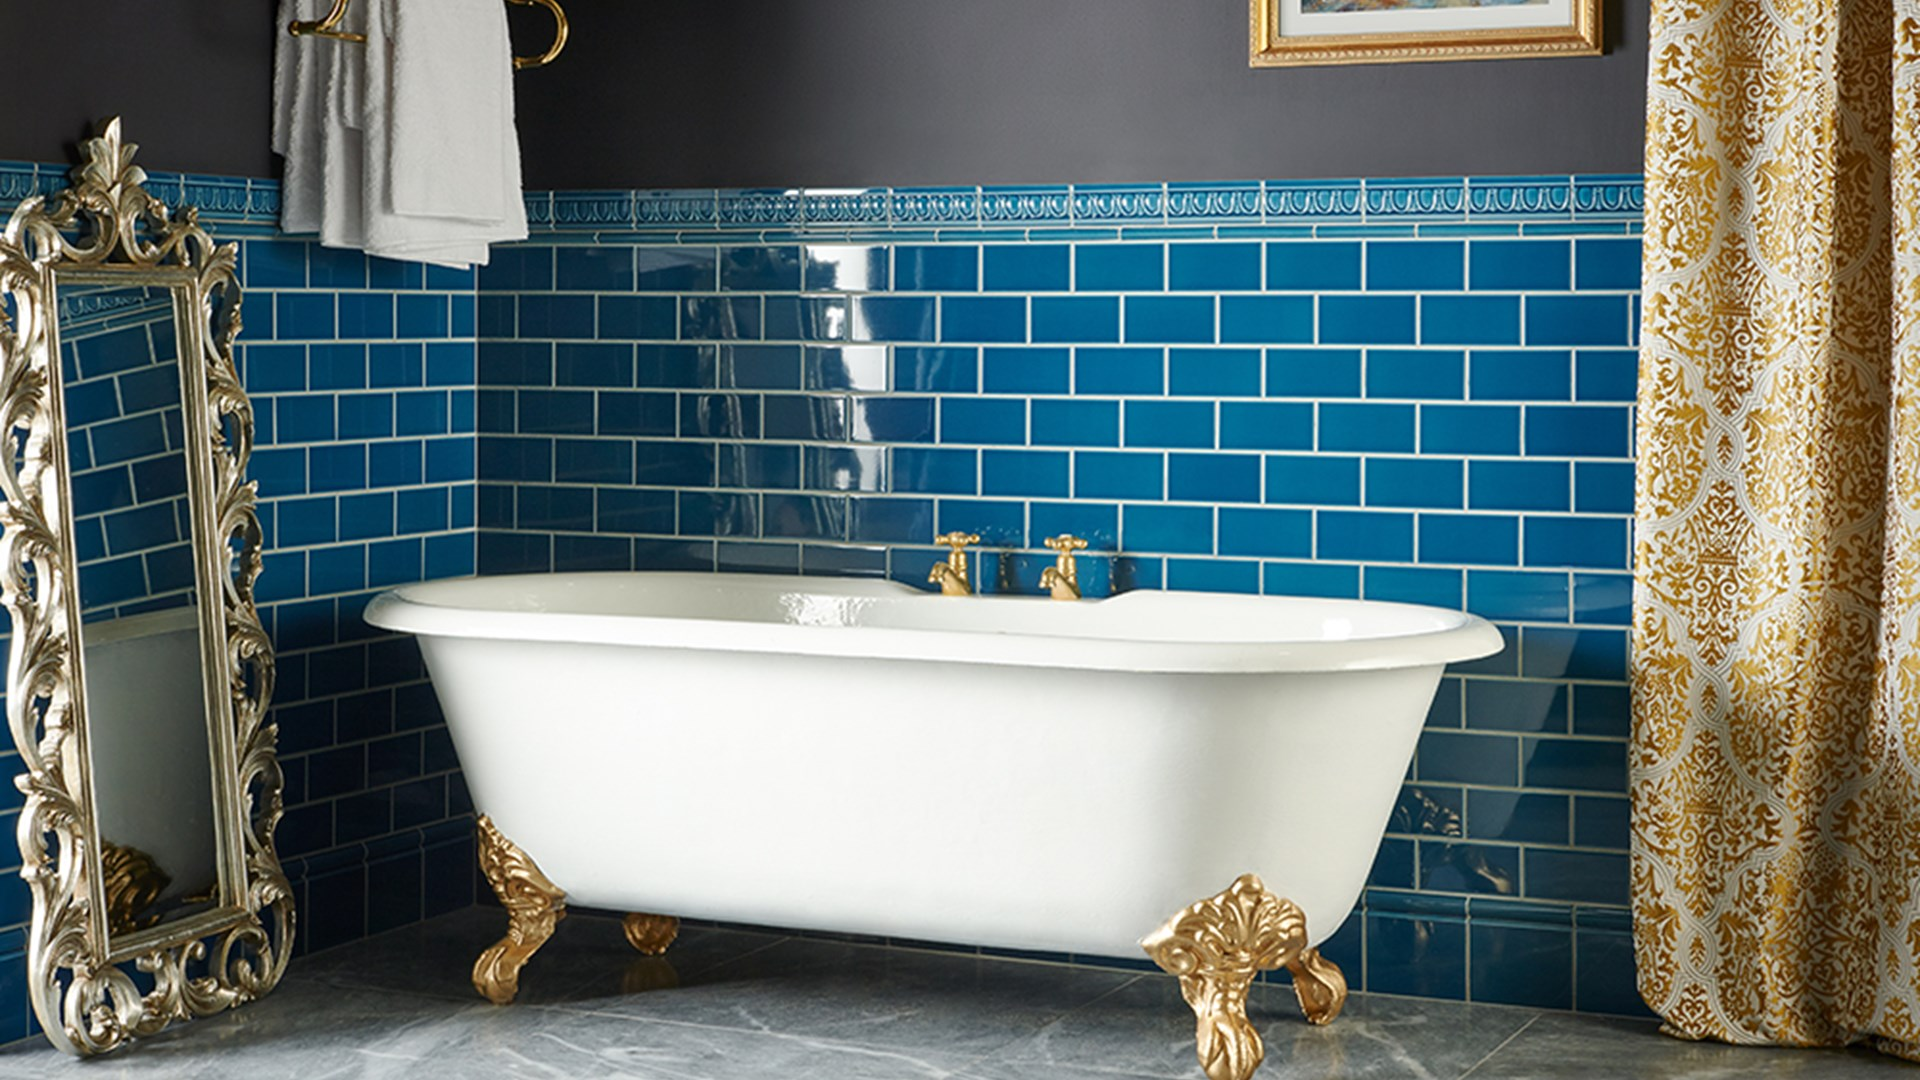 5 ways to be bold with your tile choices